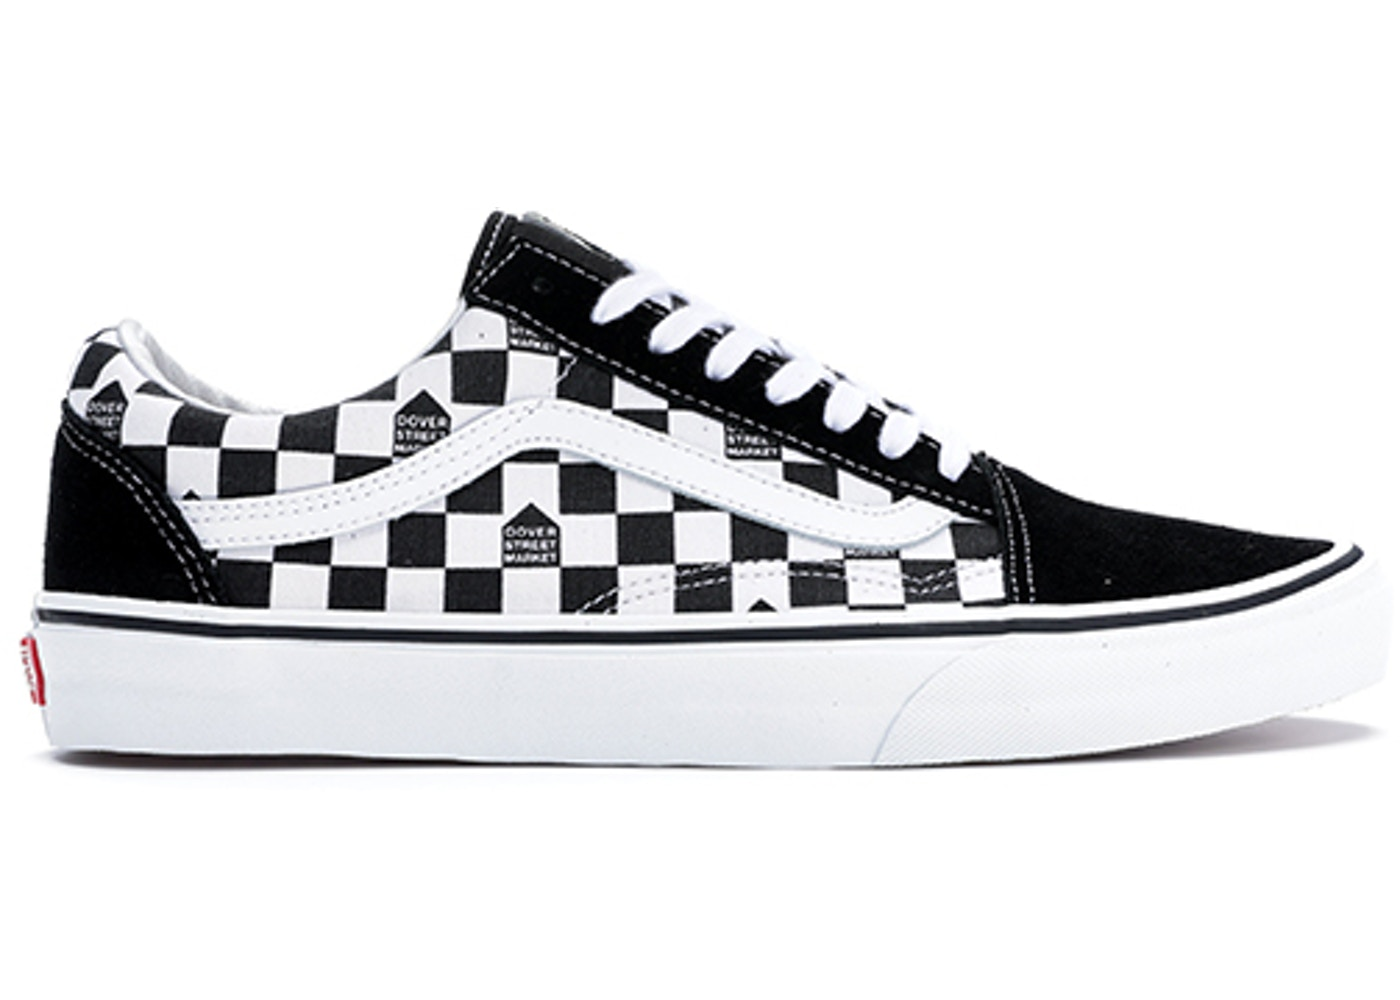 Execute skip Grease  Vans Old Skool DSM Checkerboard Black White - VN0004OJJ7L